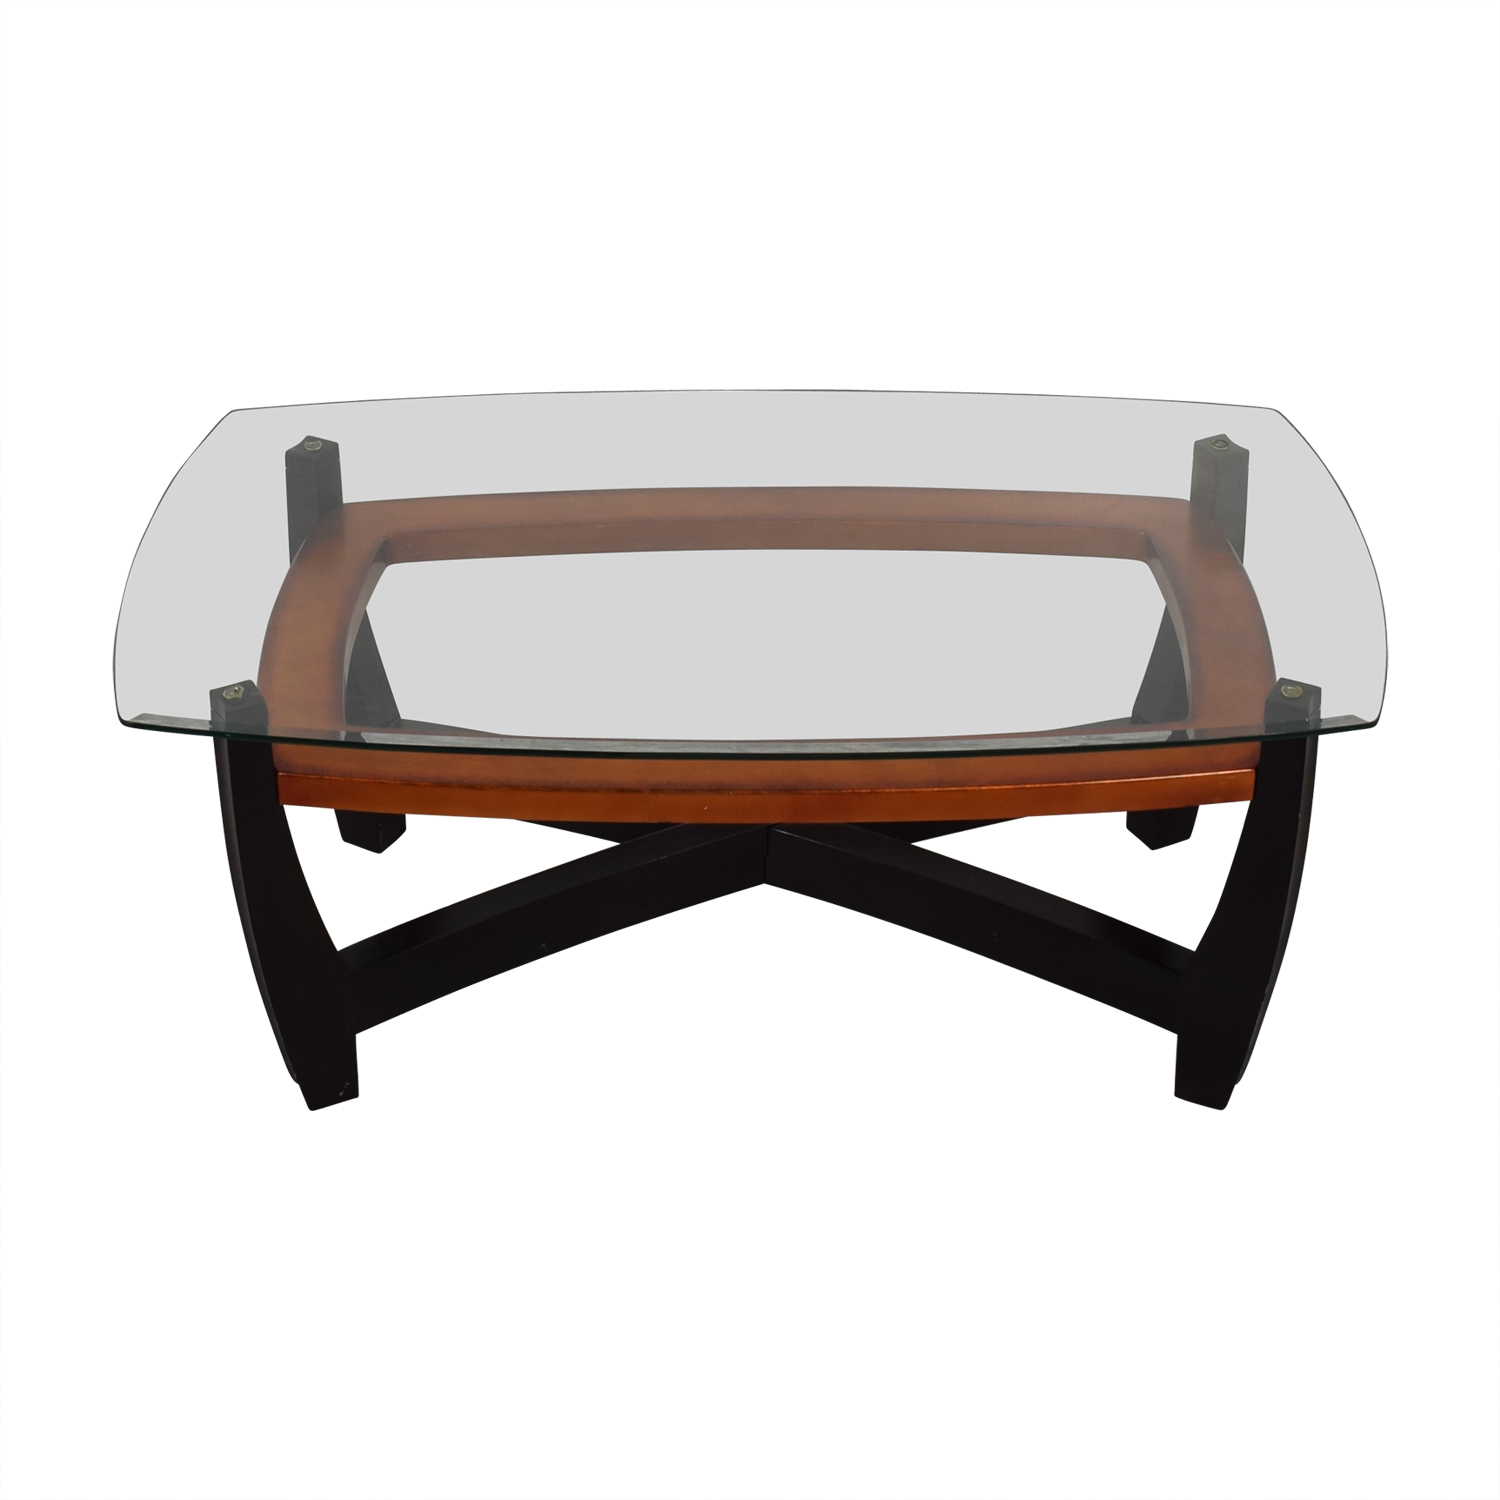 Raymour & Flanigan Raymour & Flanigan Black and Brown Glass Top Coffee Table Tables